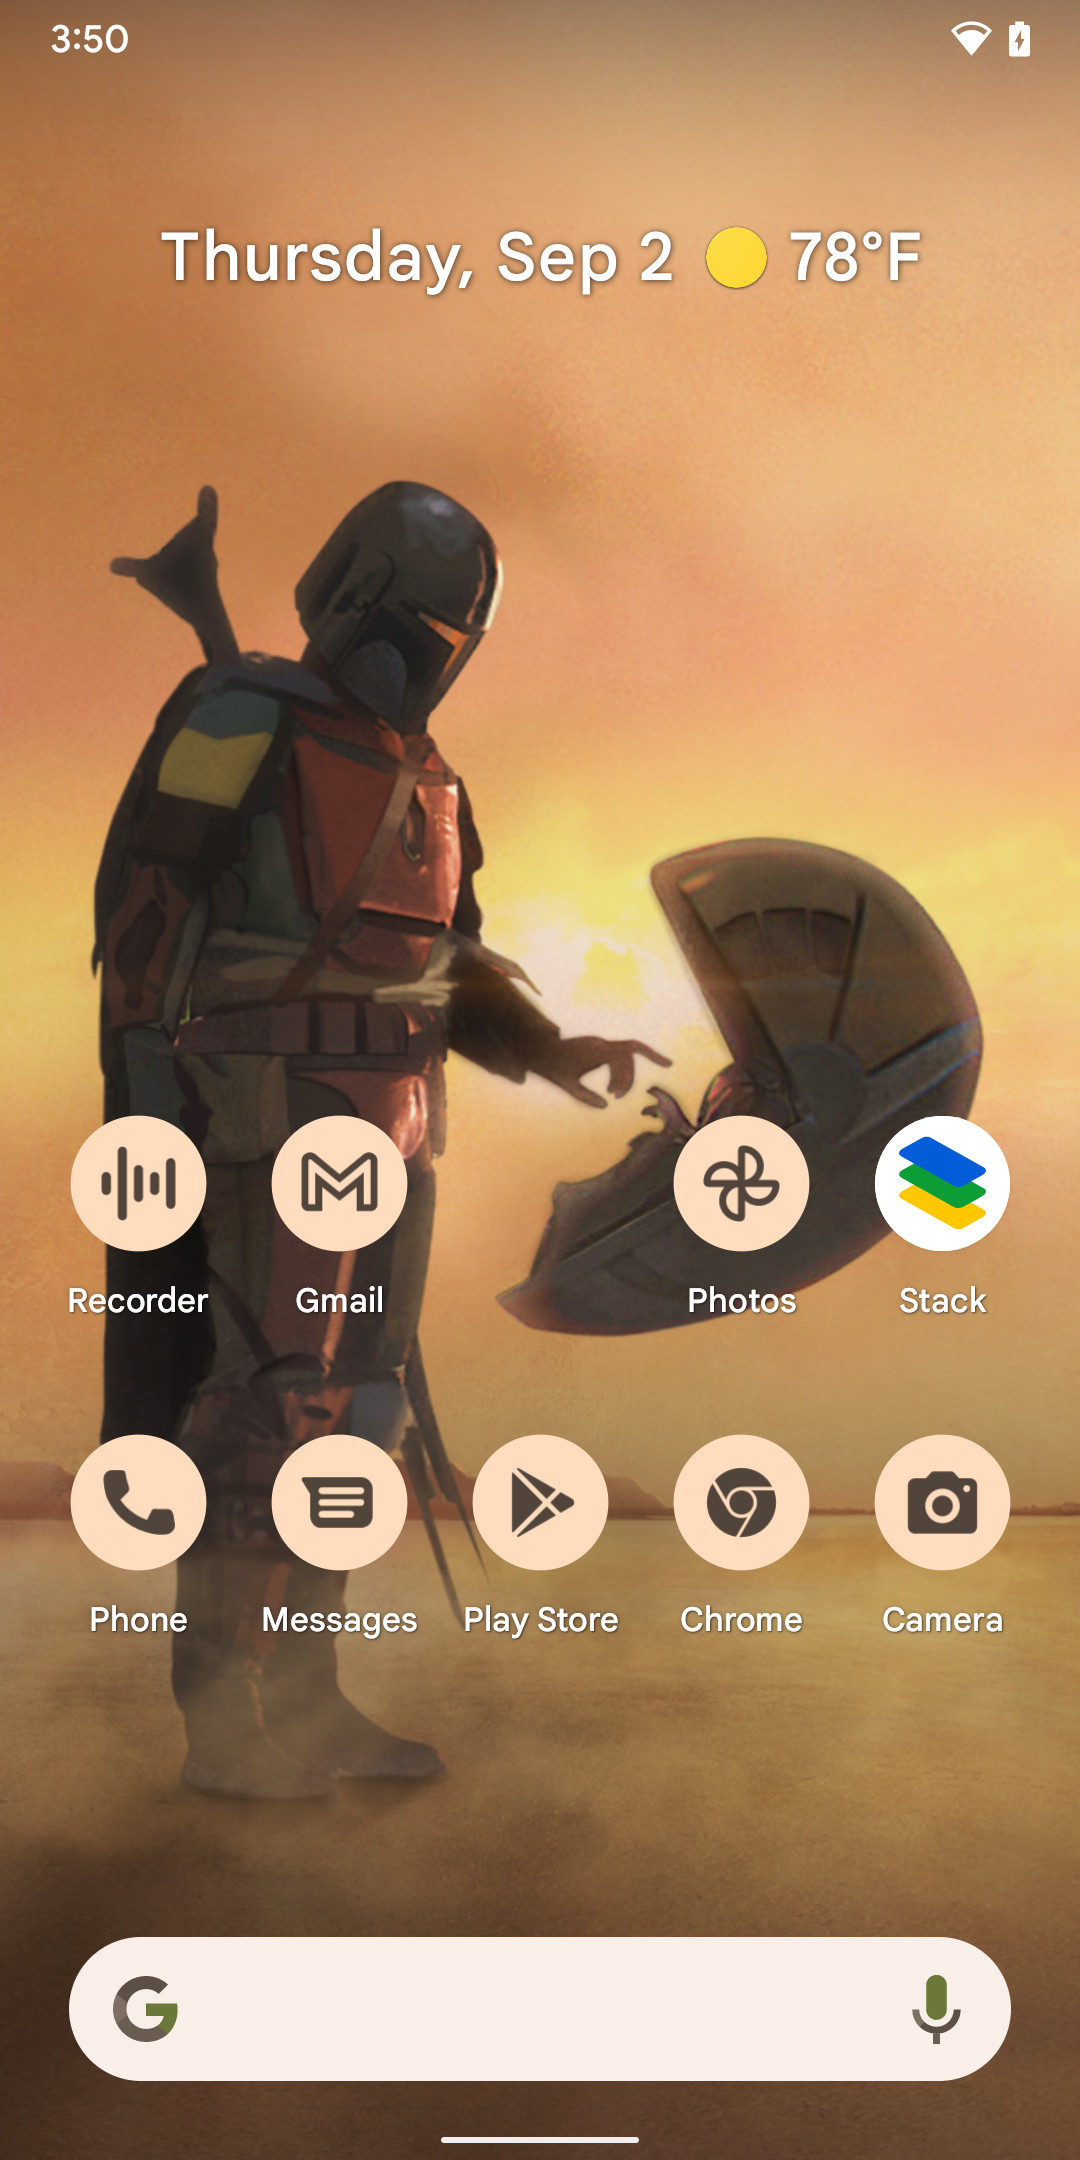 The home screen with themed icons.